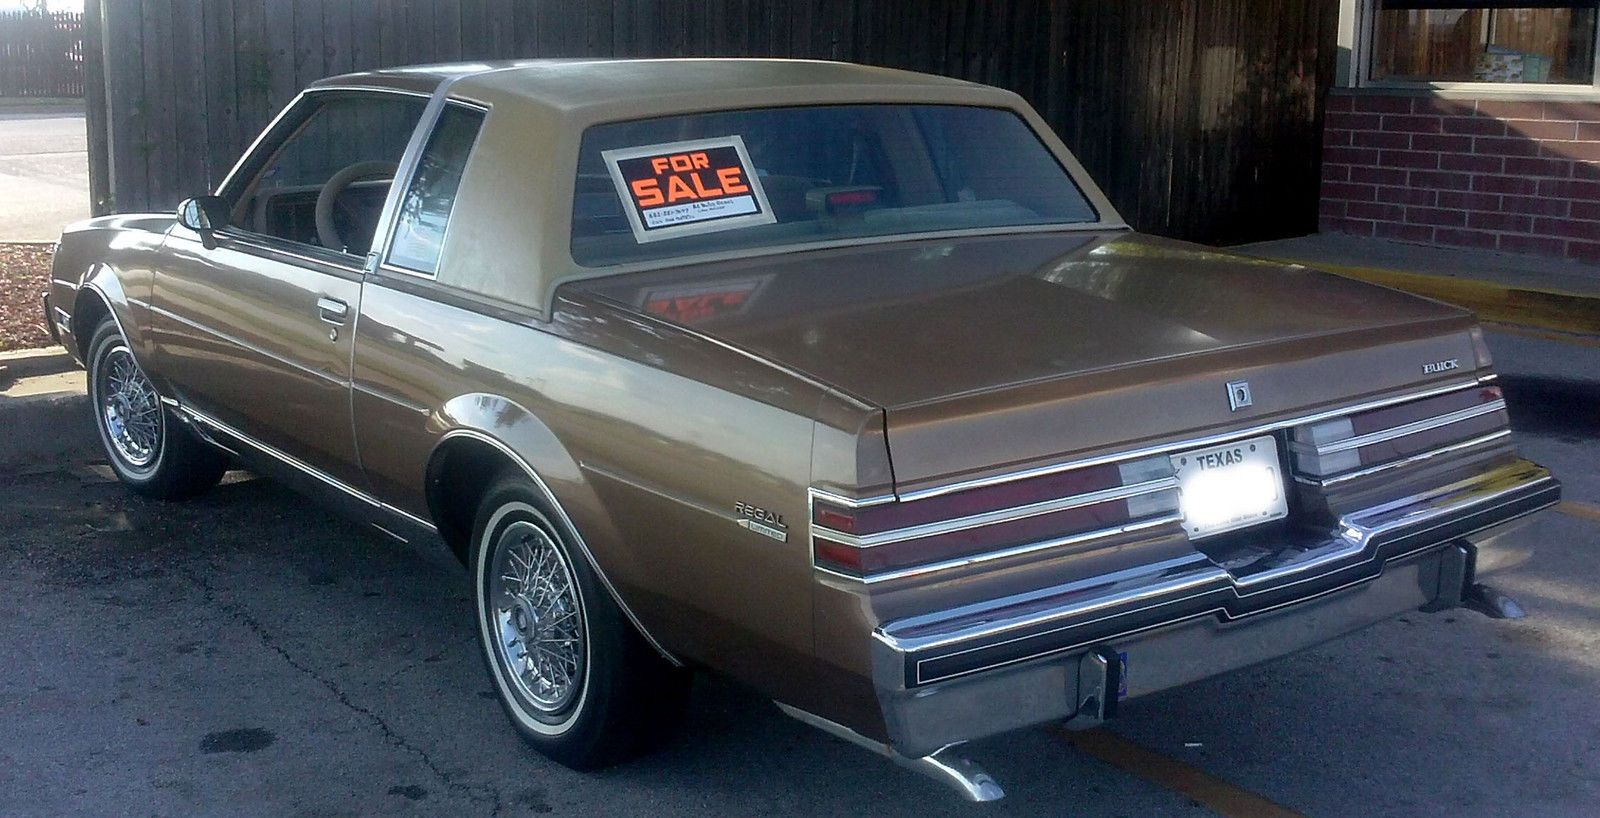 This was my very first car! I loved this car! 1986 Buick Regal ...